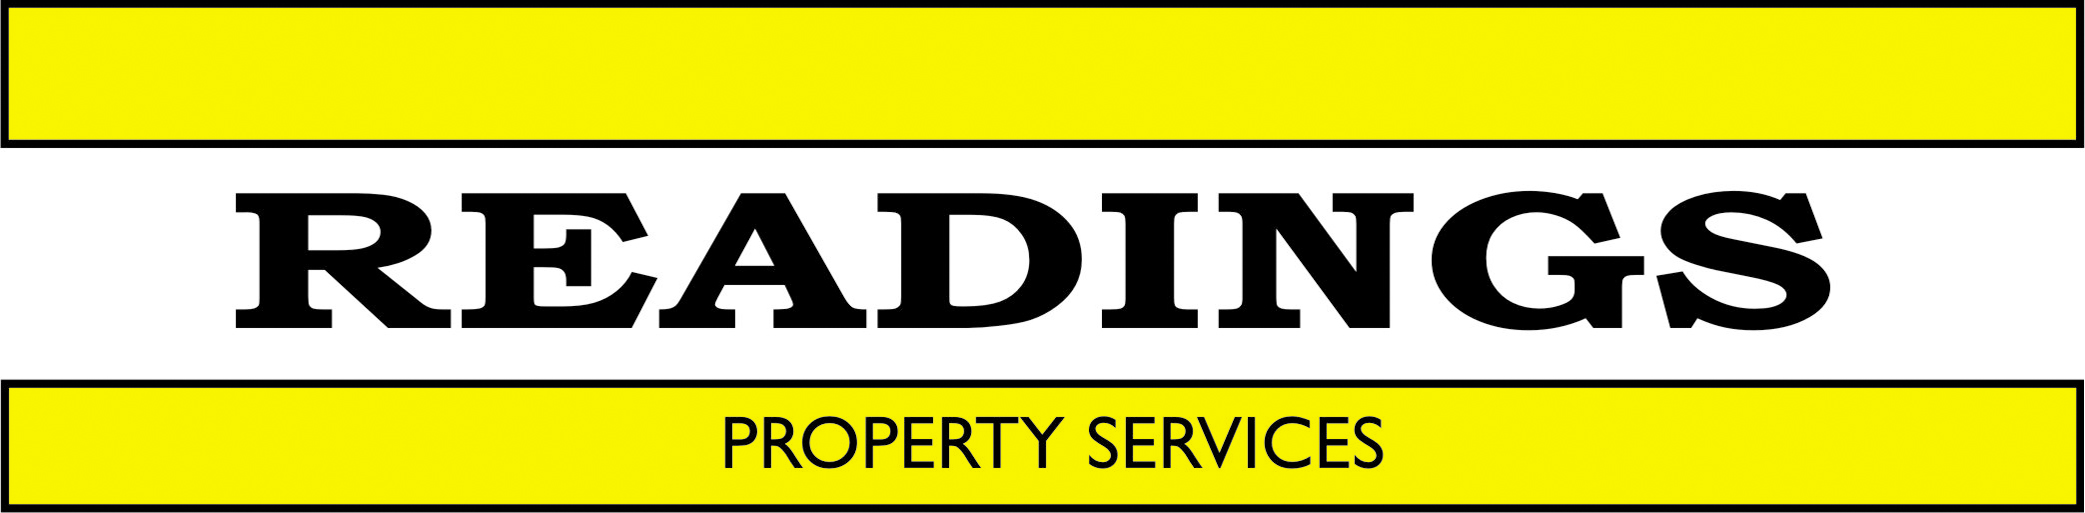 Readings Property Services